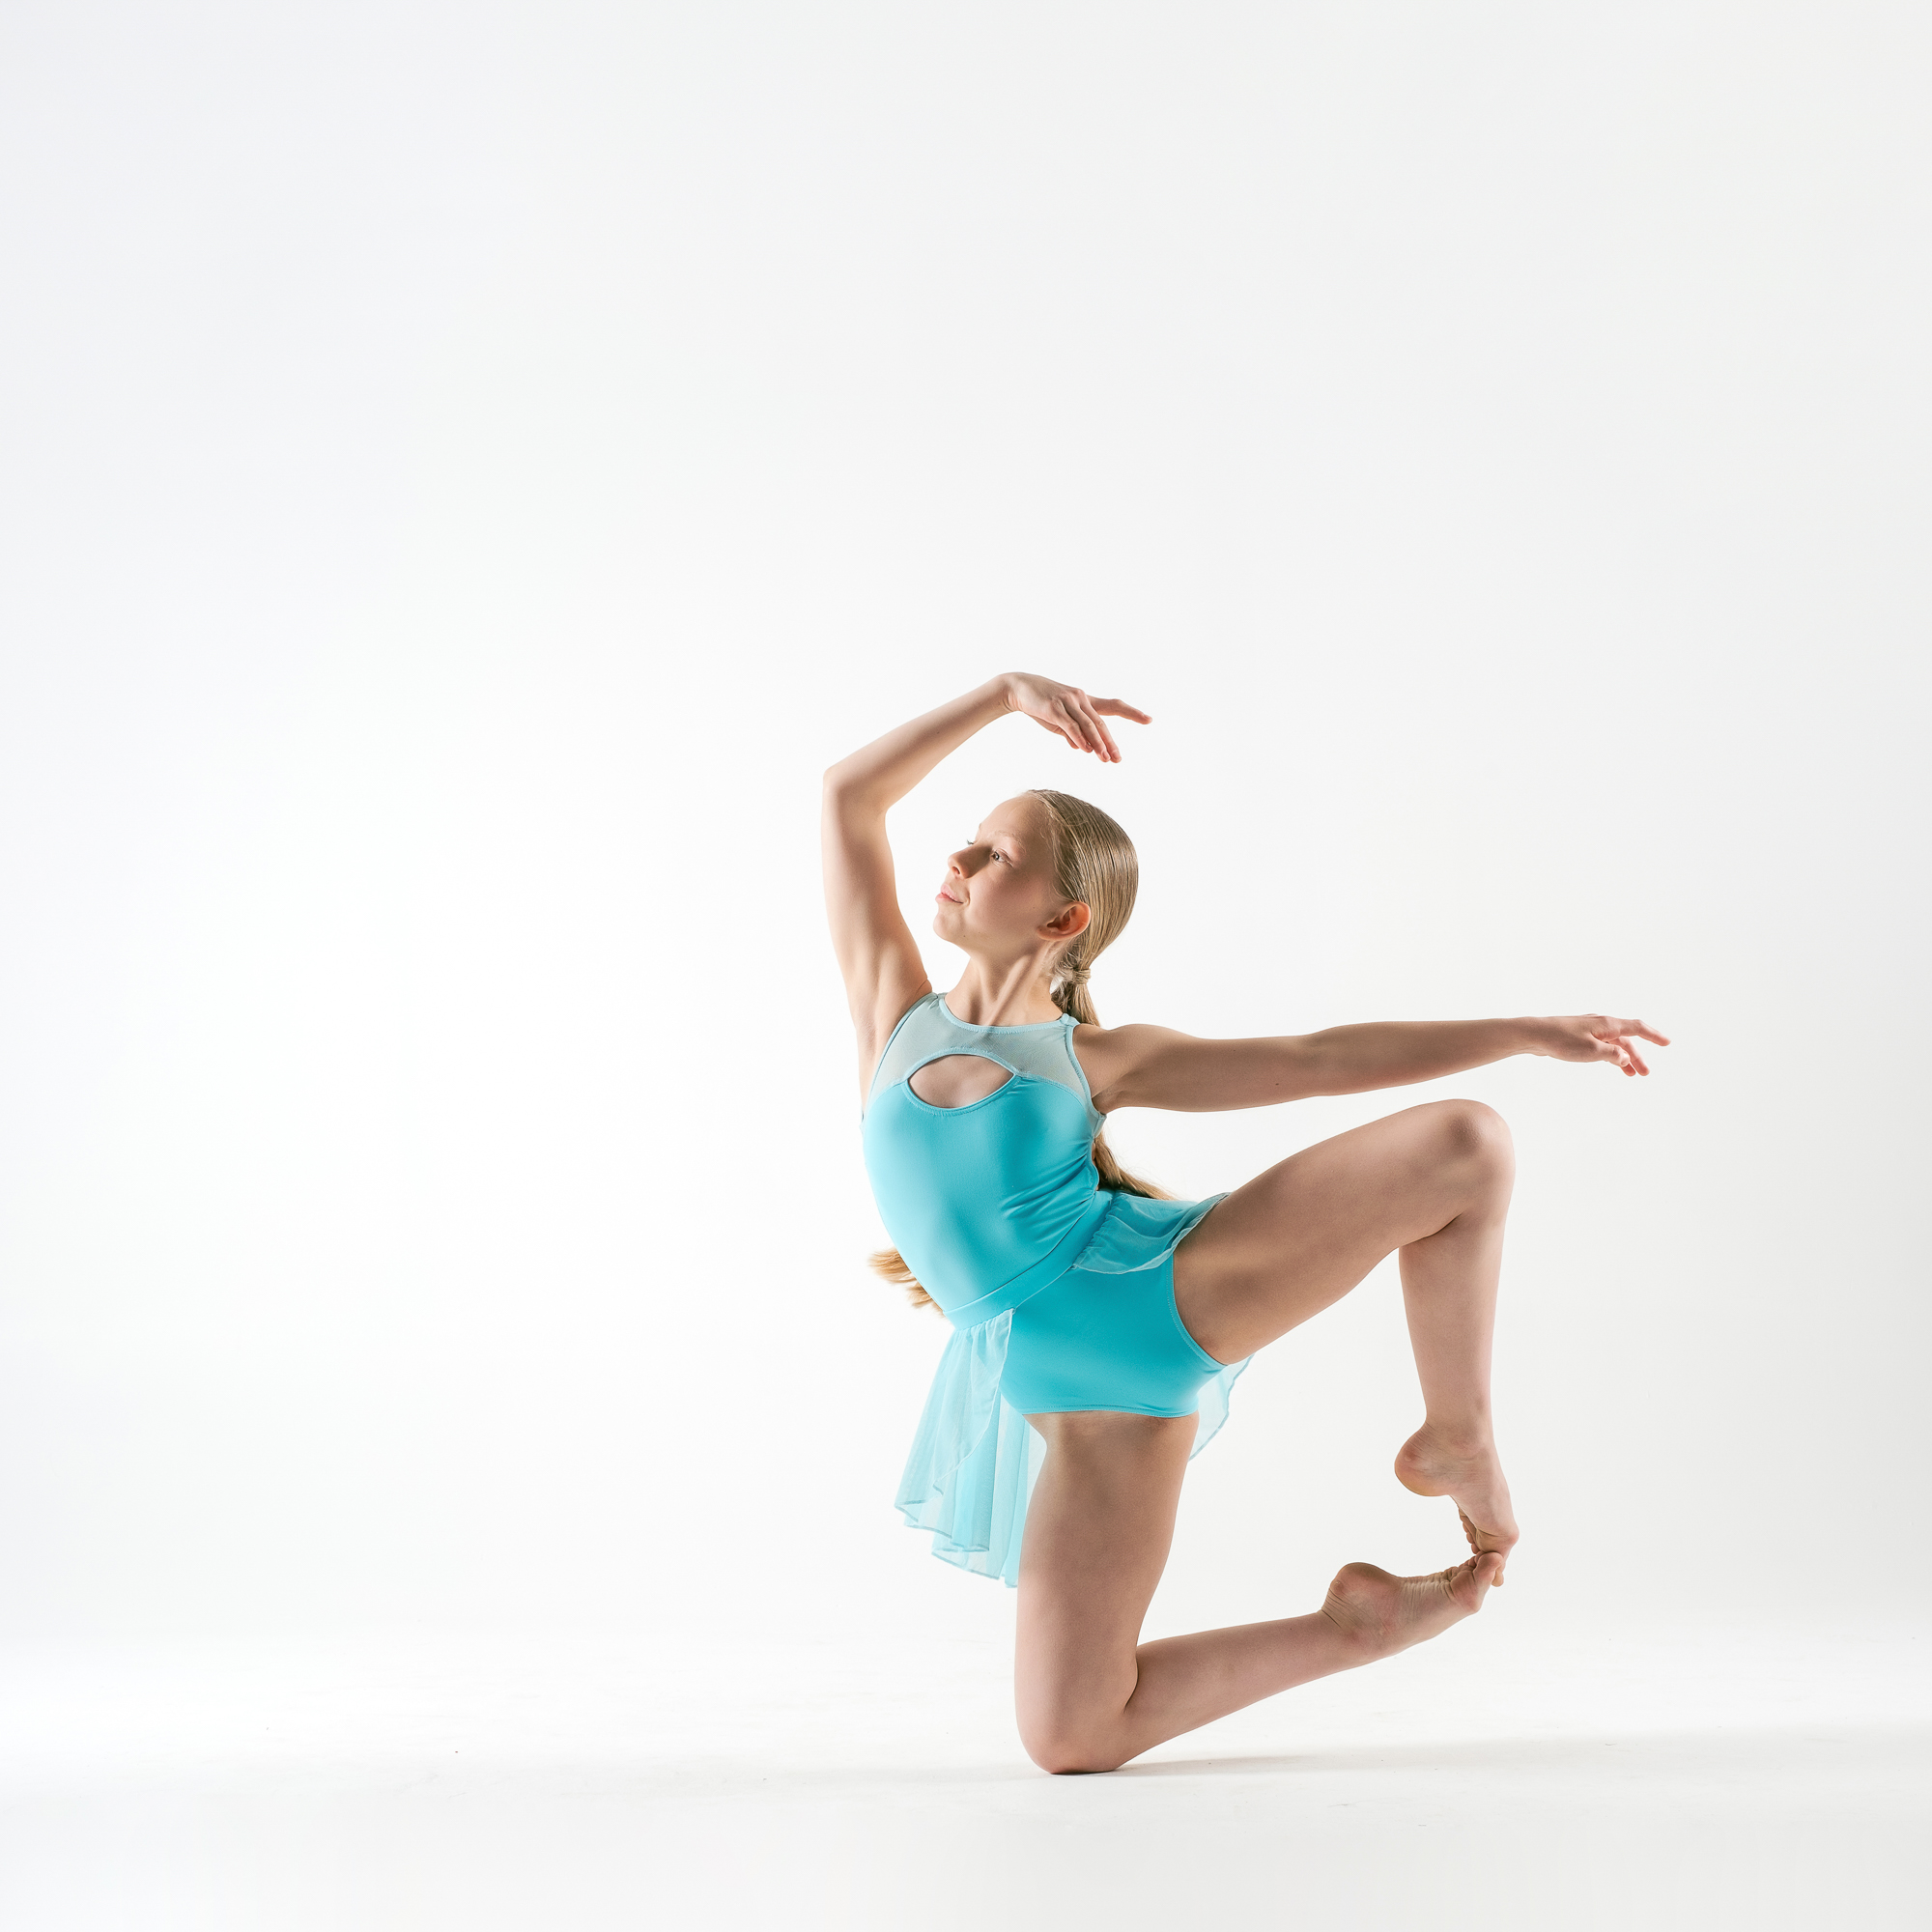 Suzi Bird Dance Photographer Bristol Clevedon London 31.jpg